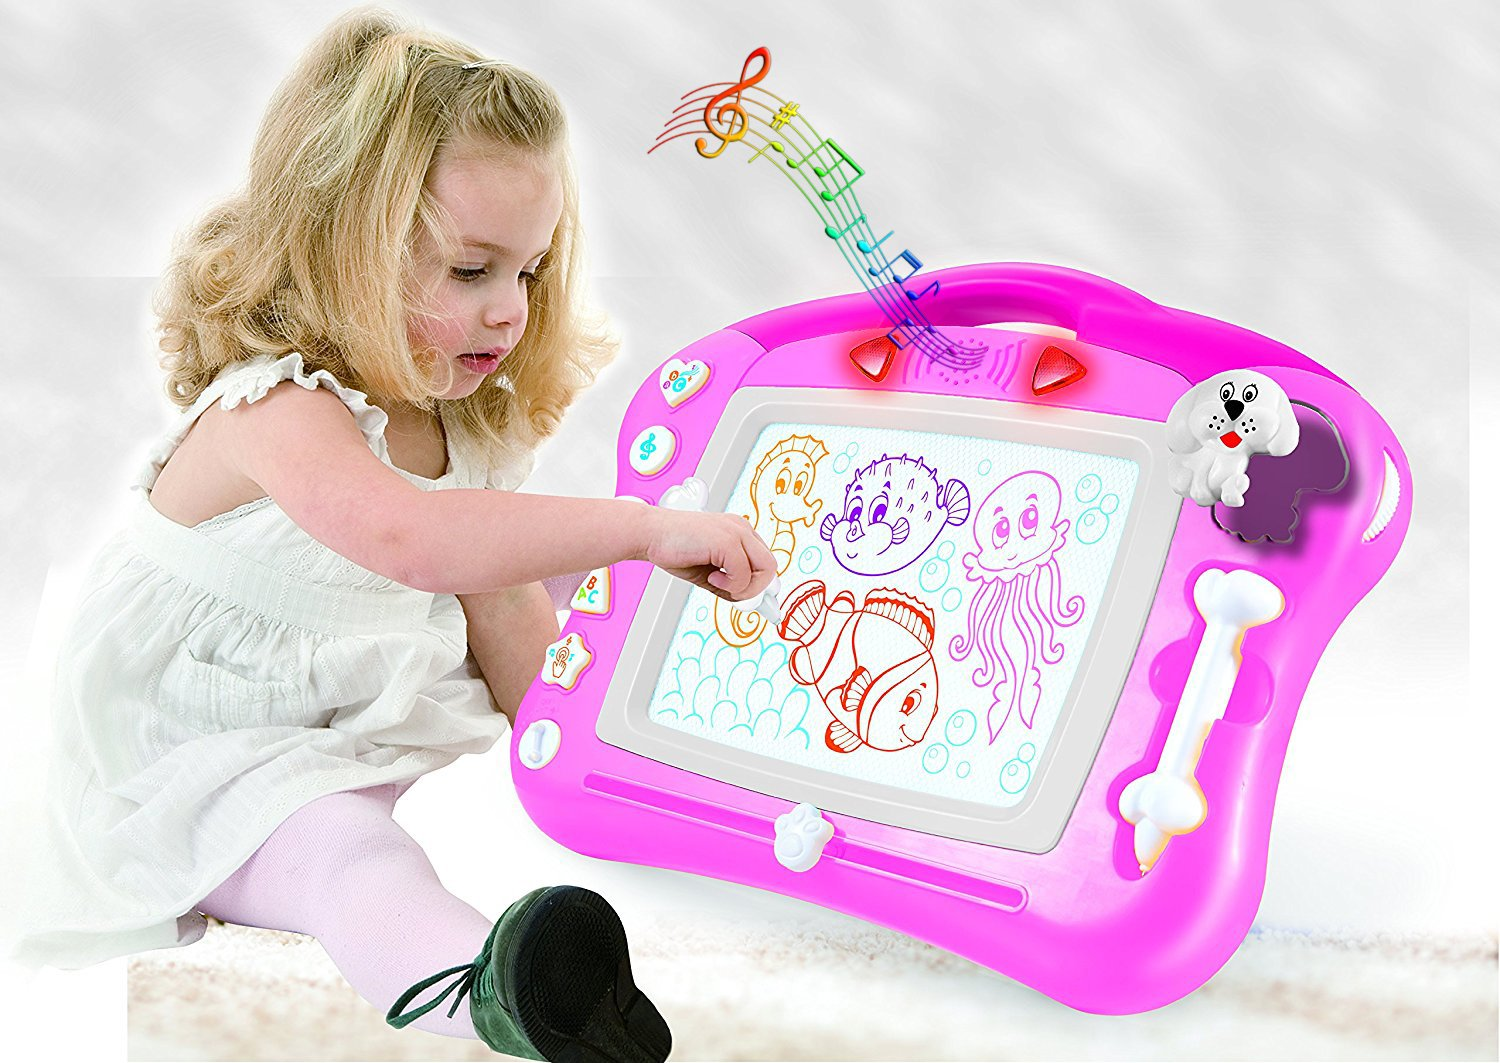 Magnetic Drawing Board For Kids - 4 Color Zone Erasable Magna Doodle Pad For Educational Sketching – Great Gift For Boys And Girls 3+ - Pink With Sounds